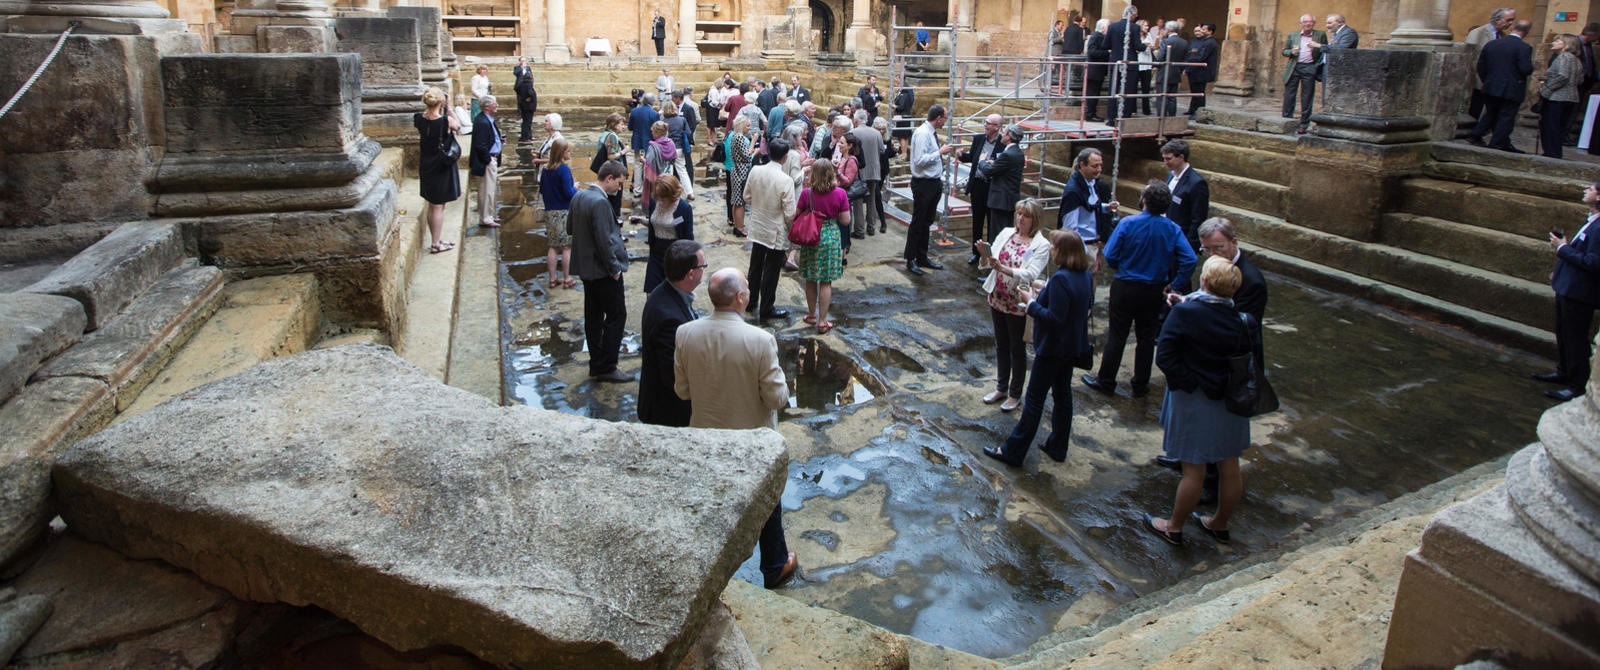 Image: A Roman Baths Foundation event at the Roman Baths